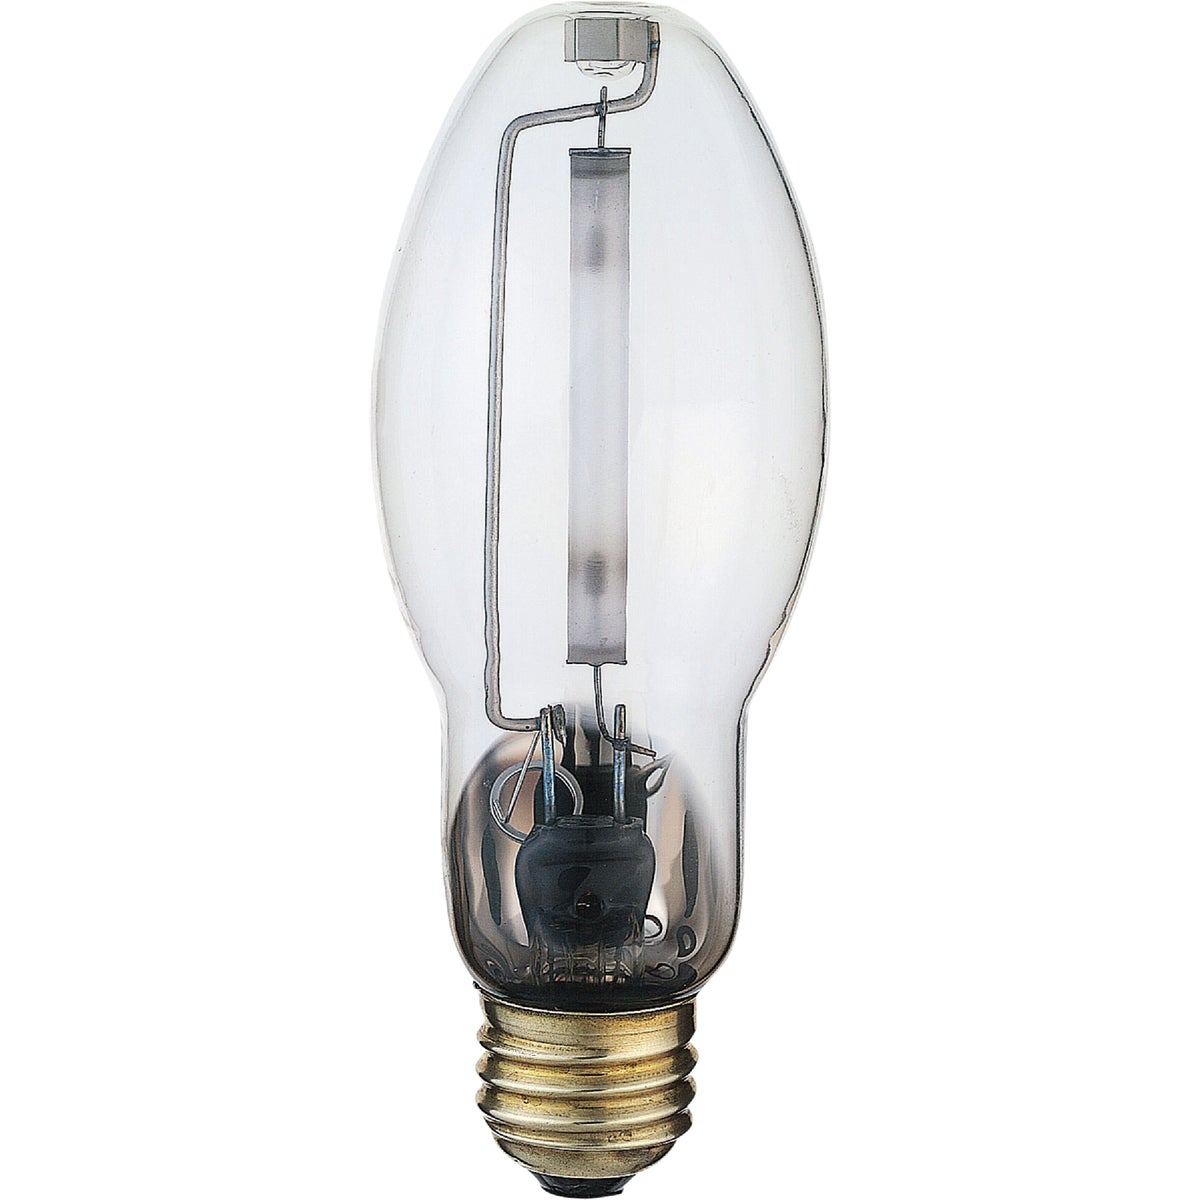 150W HP SODIUM BULB - 26429 by G E Lighting Incom